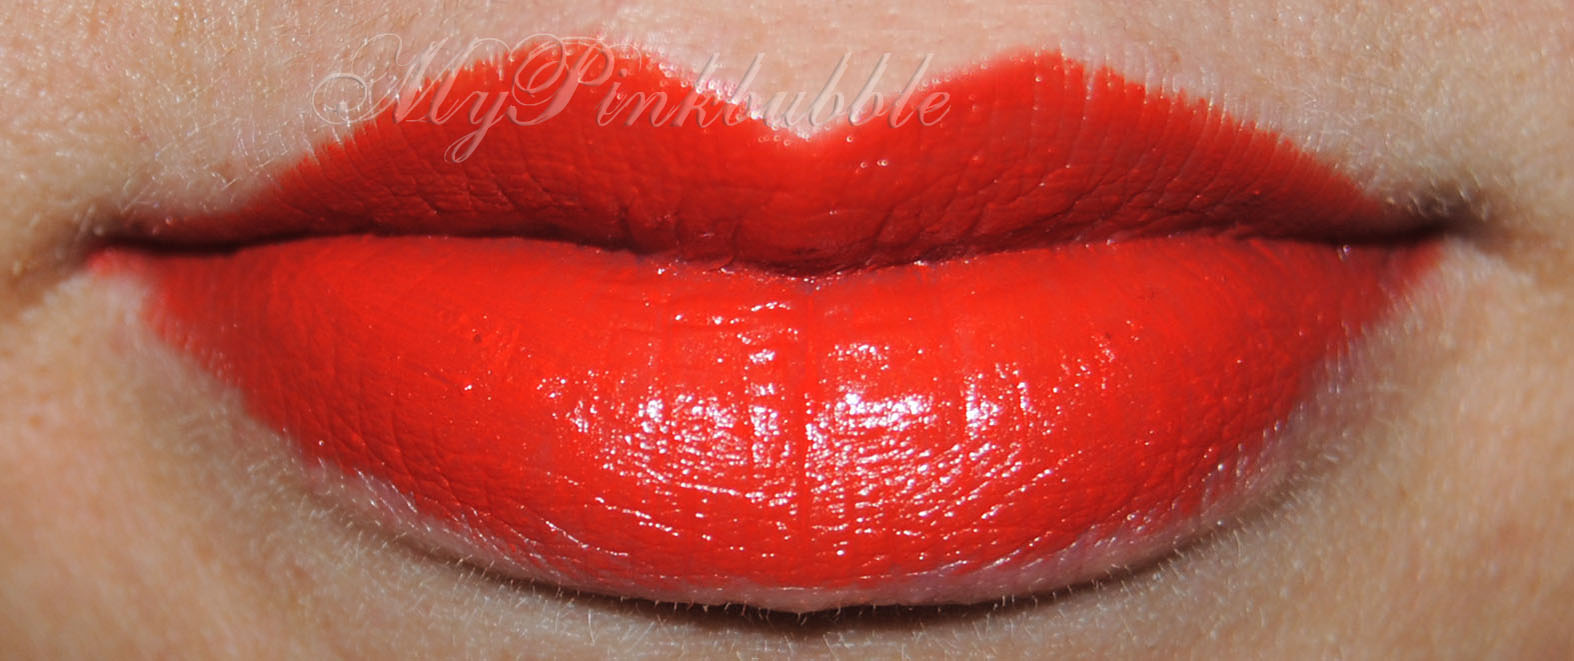 Ten Image Supreme lipstick 920 swatch